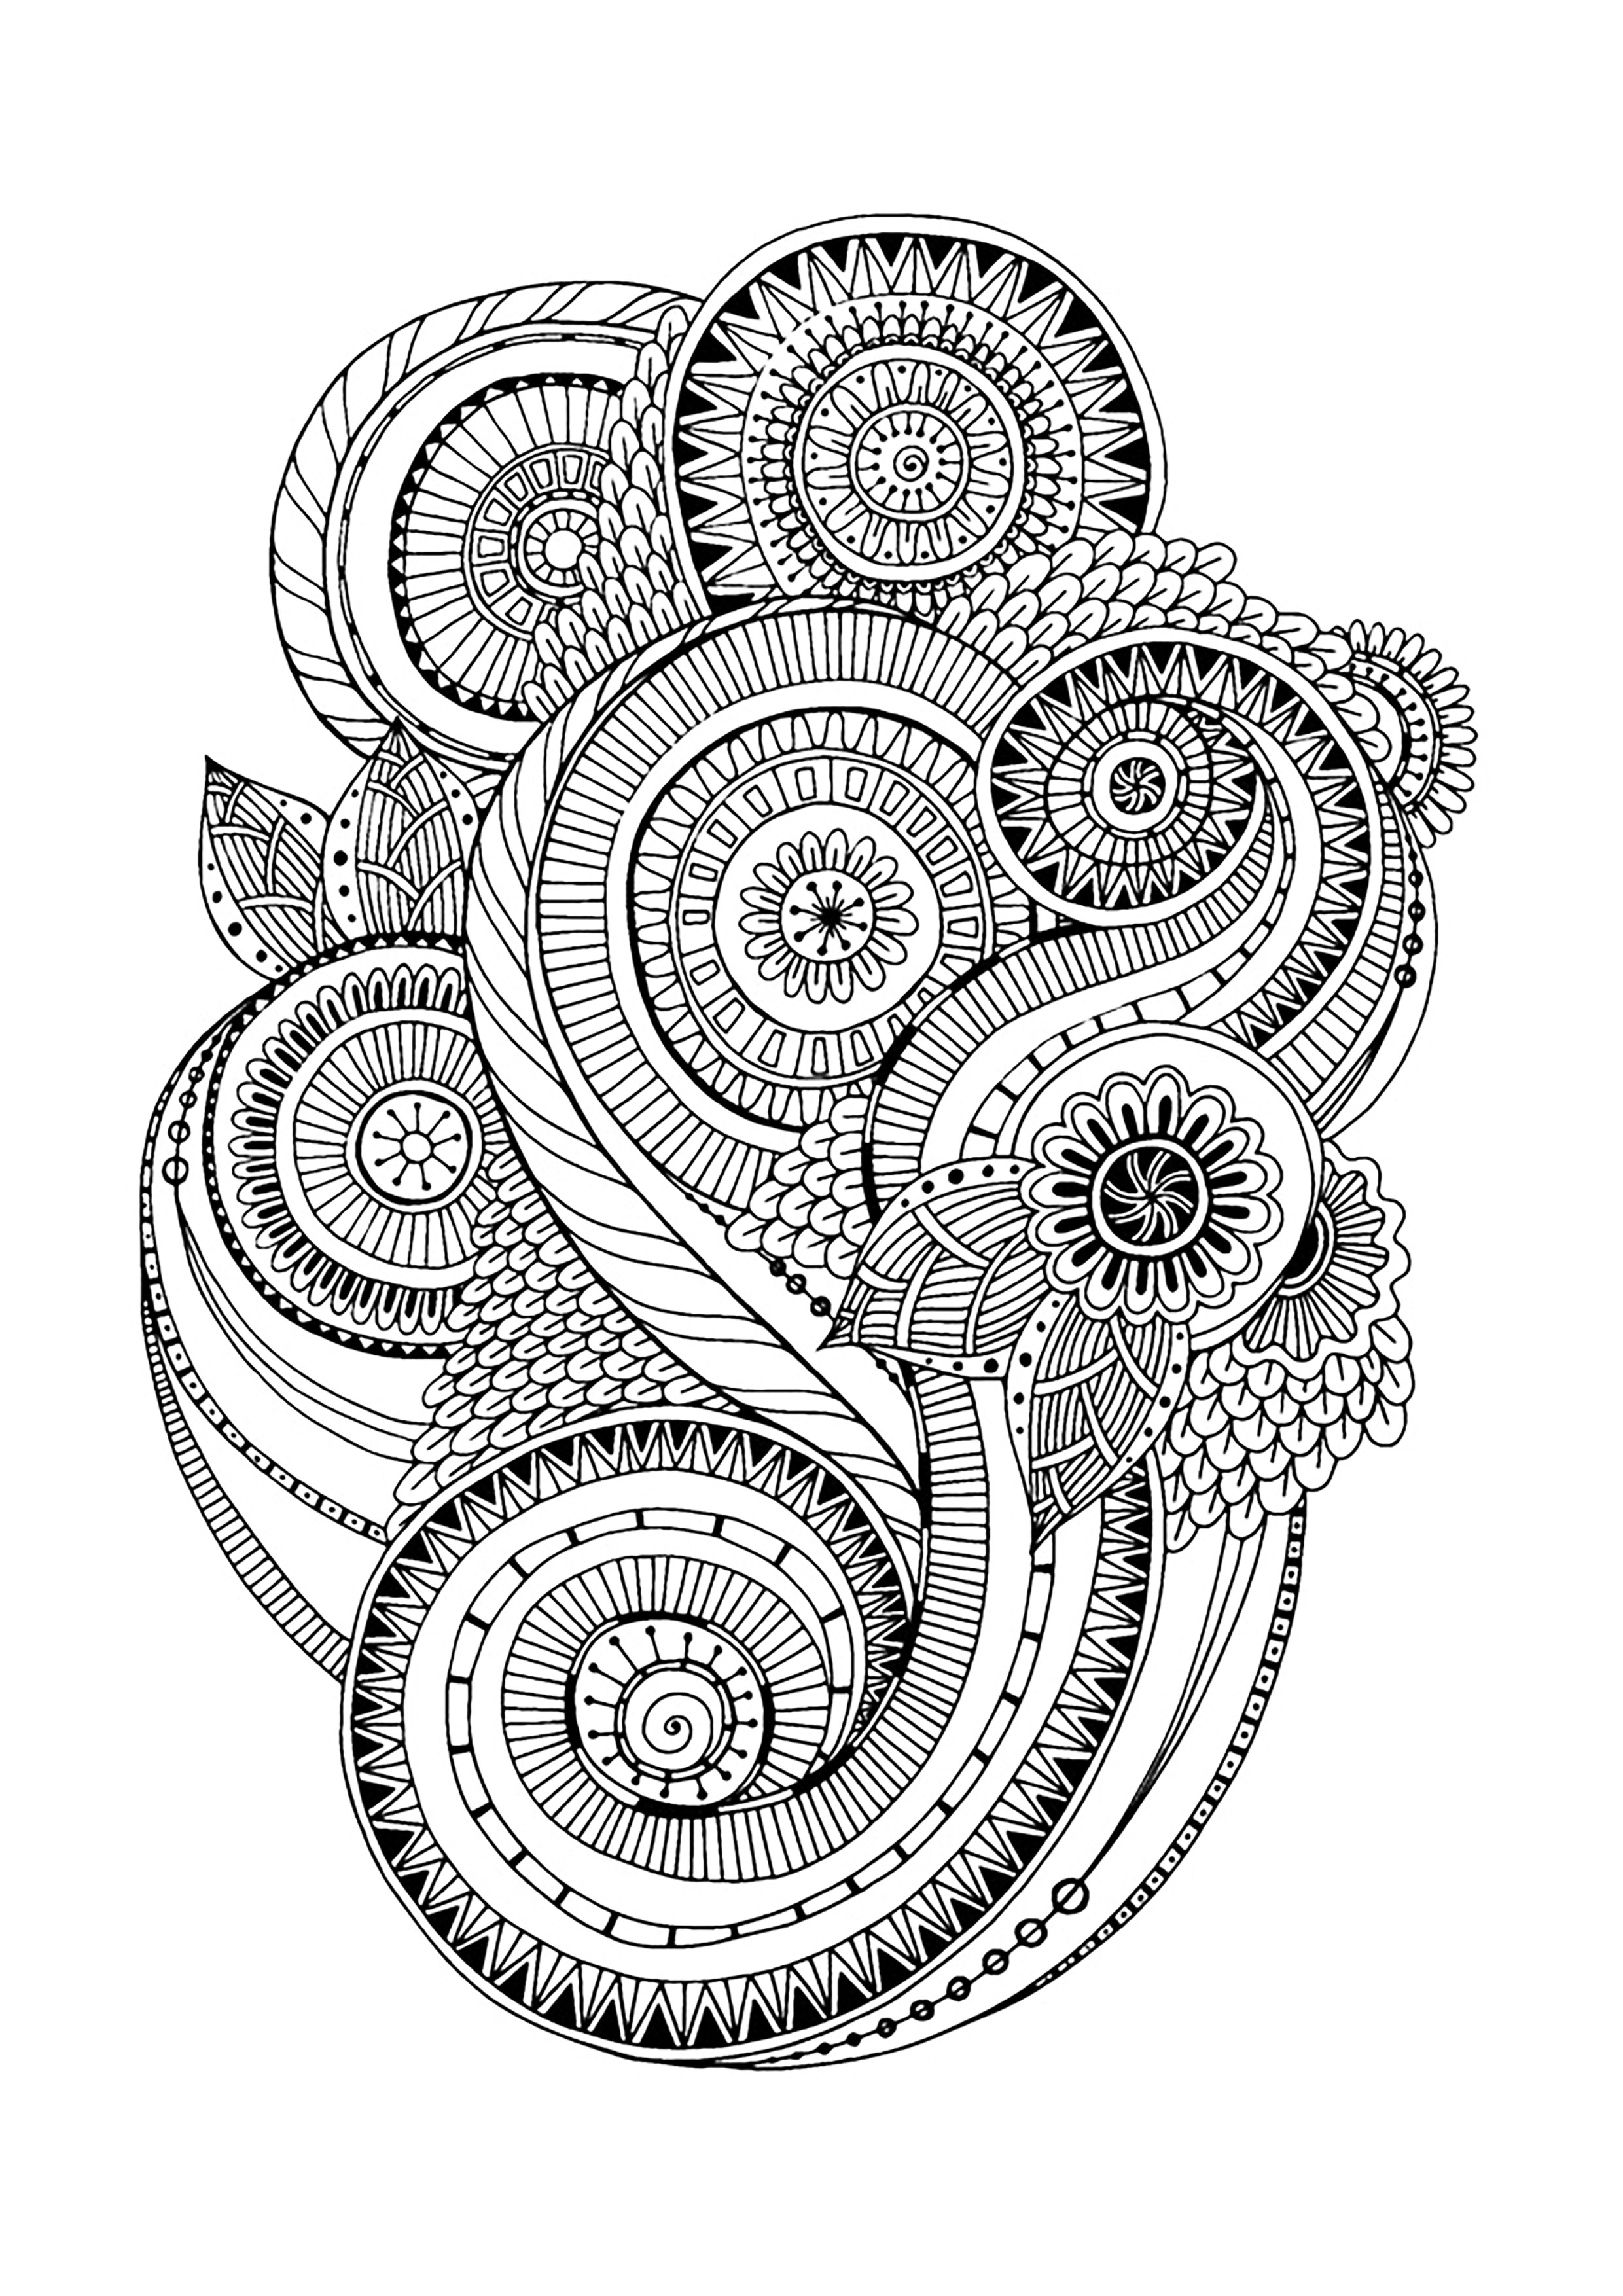 Coloring zen antistress abstract pattern inspired by flowers 2 by juliasnegireva